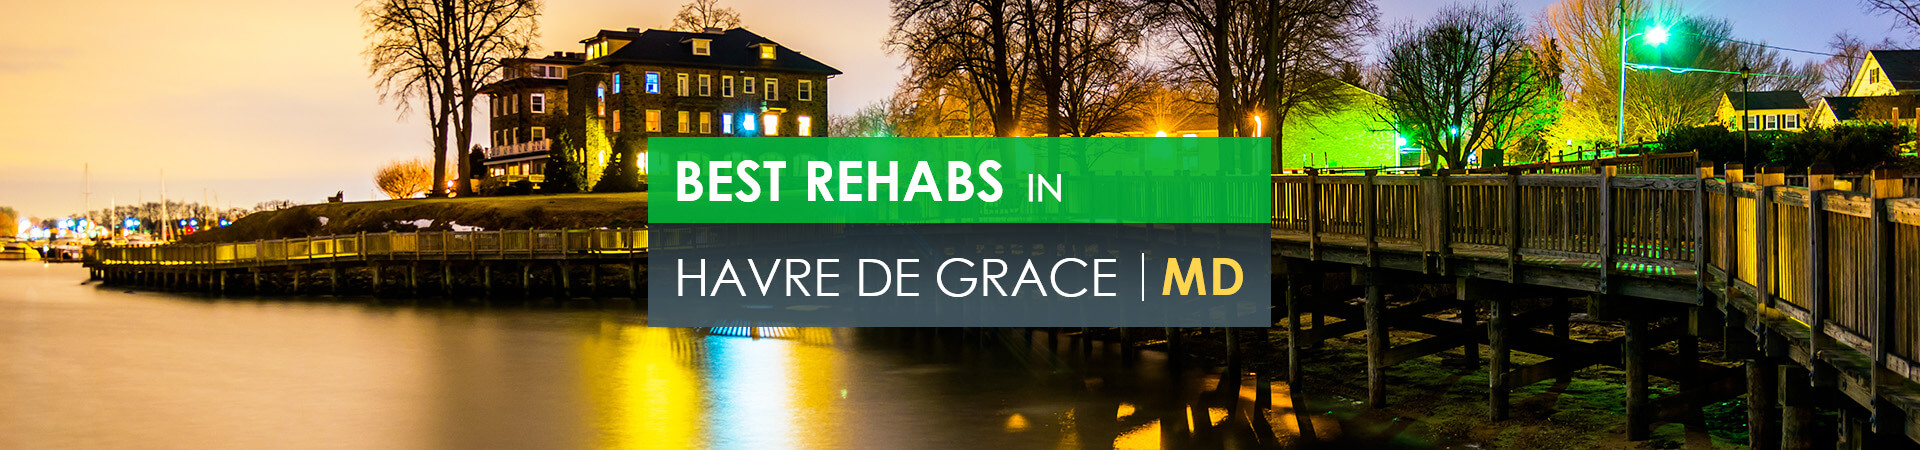 Best rehabs in Havre de Grace, MD